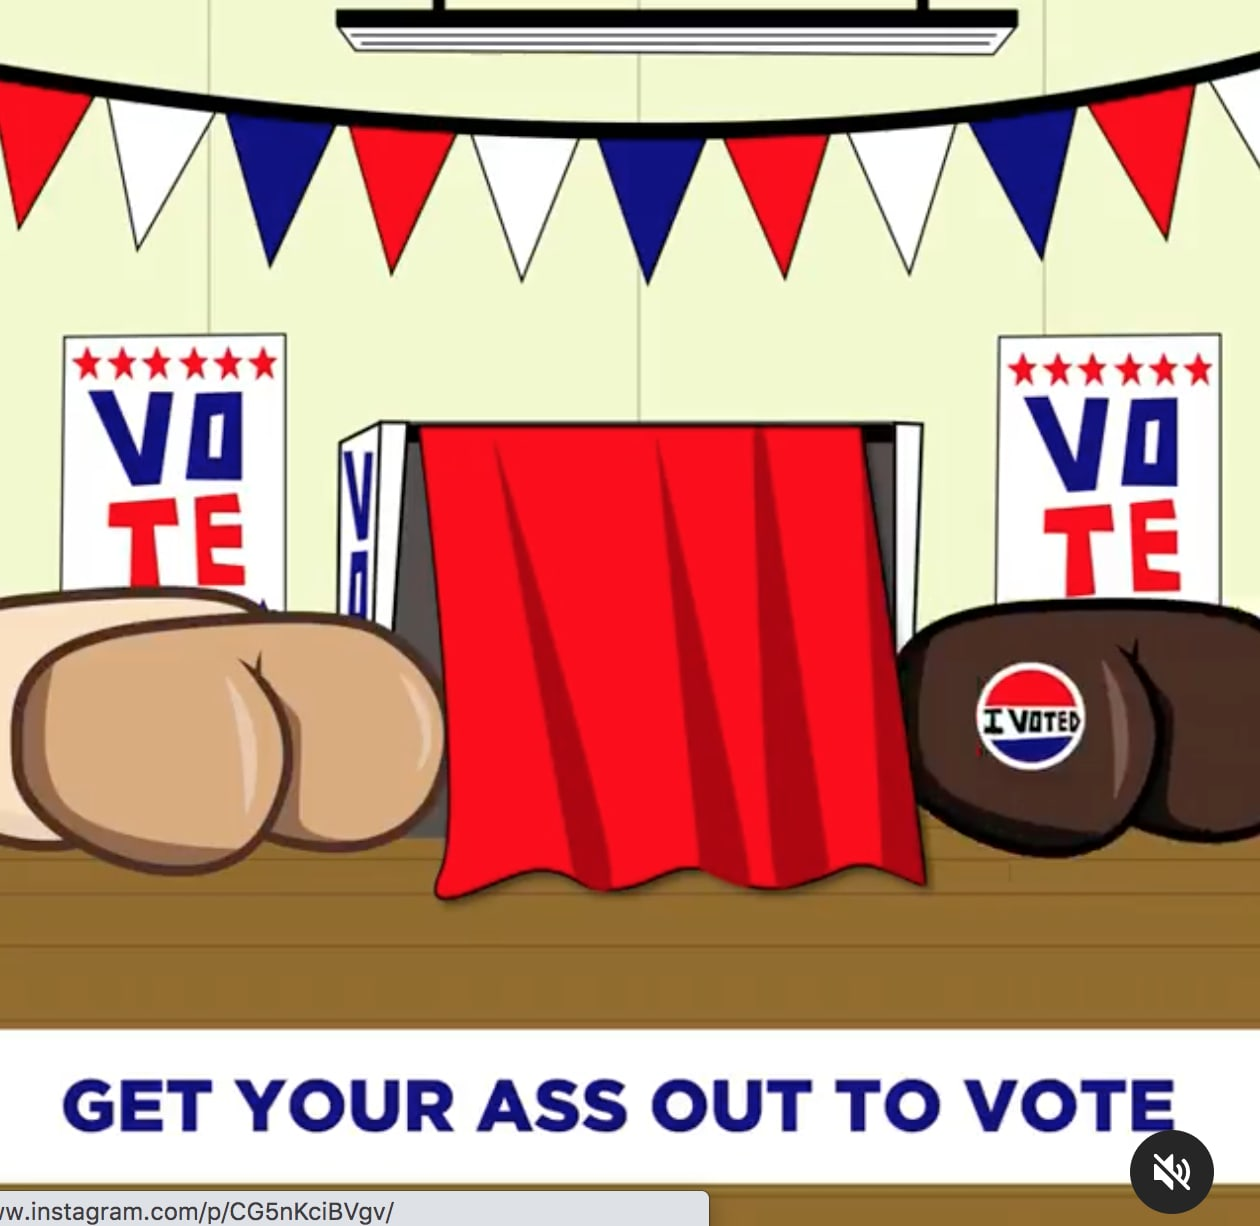 Get Your Ass Out to Vote!!!